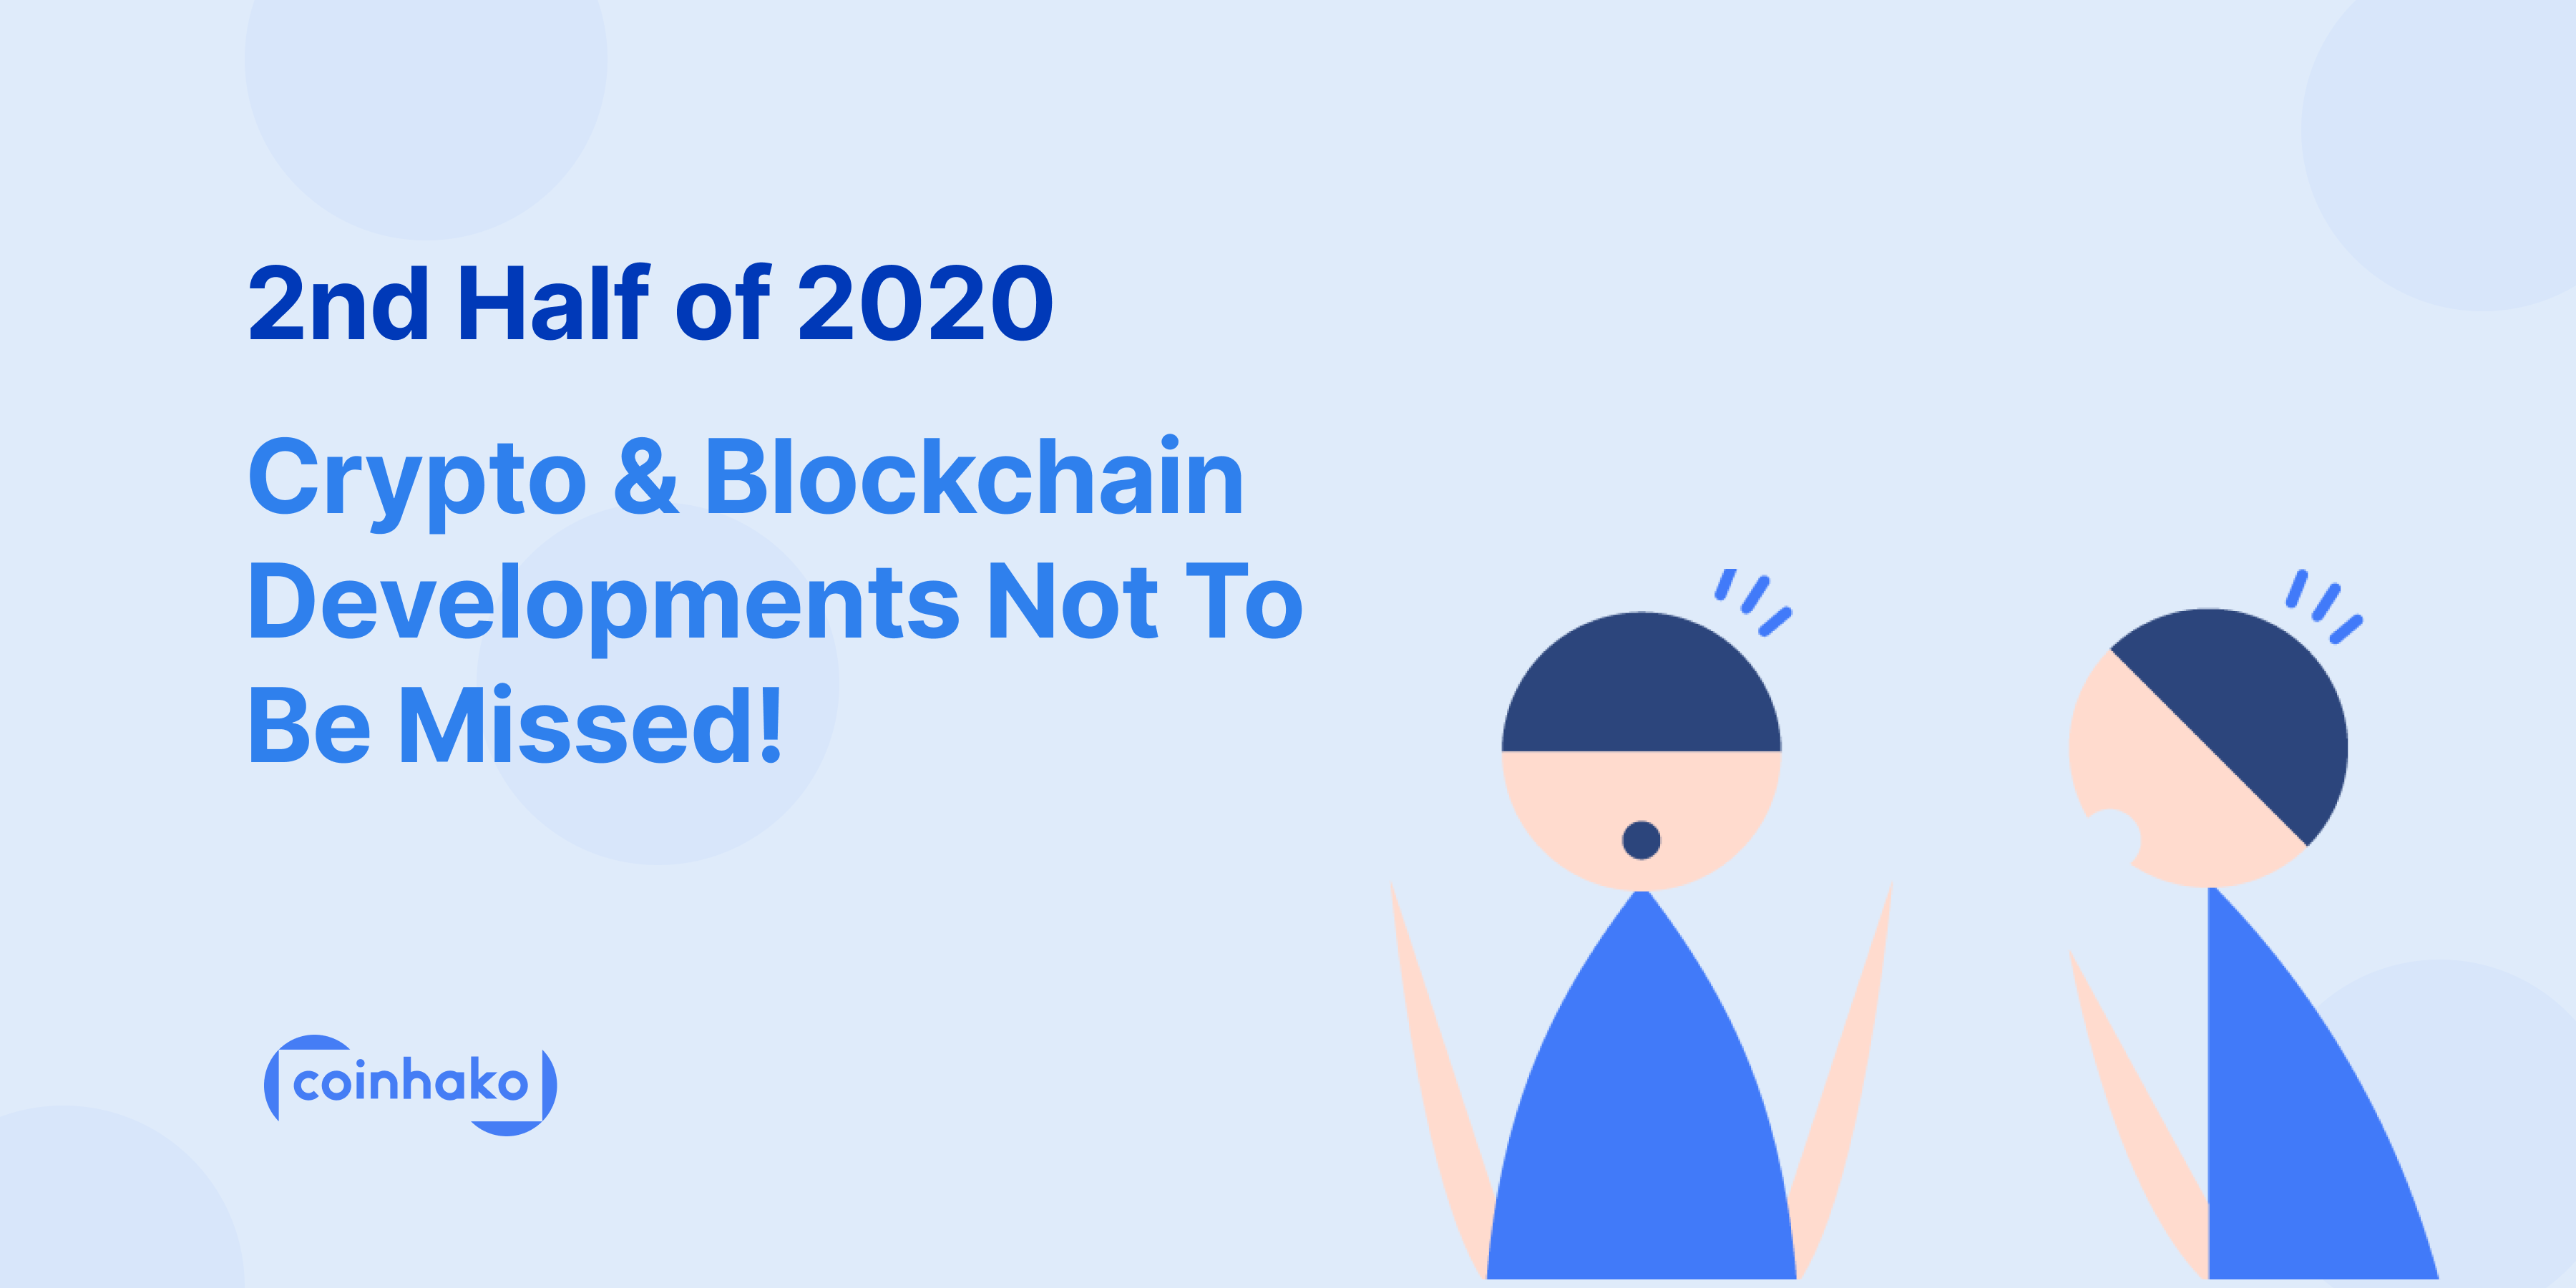 2020 Crypto & Blockchain Events And Developments Not To Miss In The 2nd Half